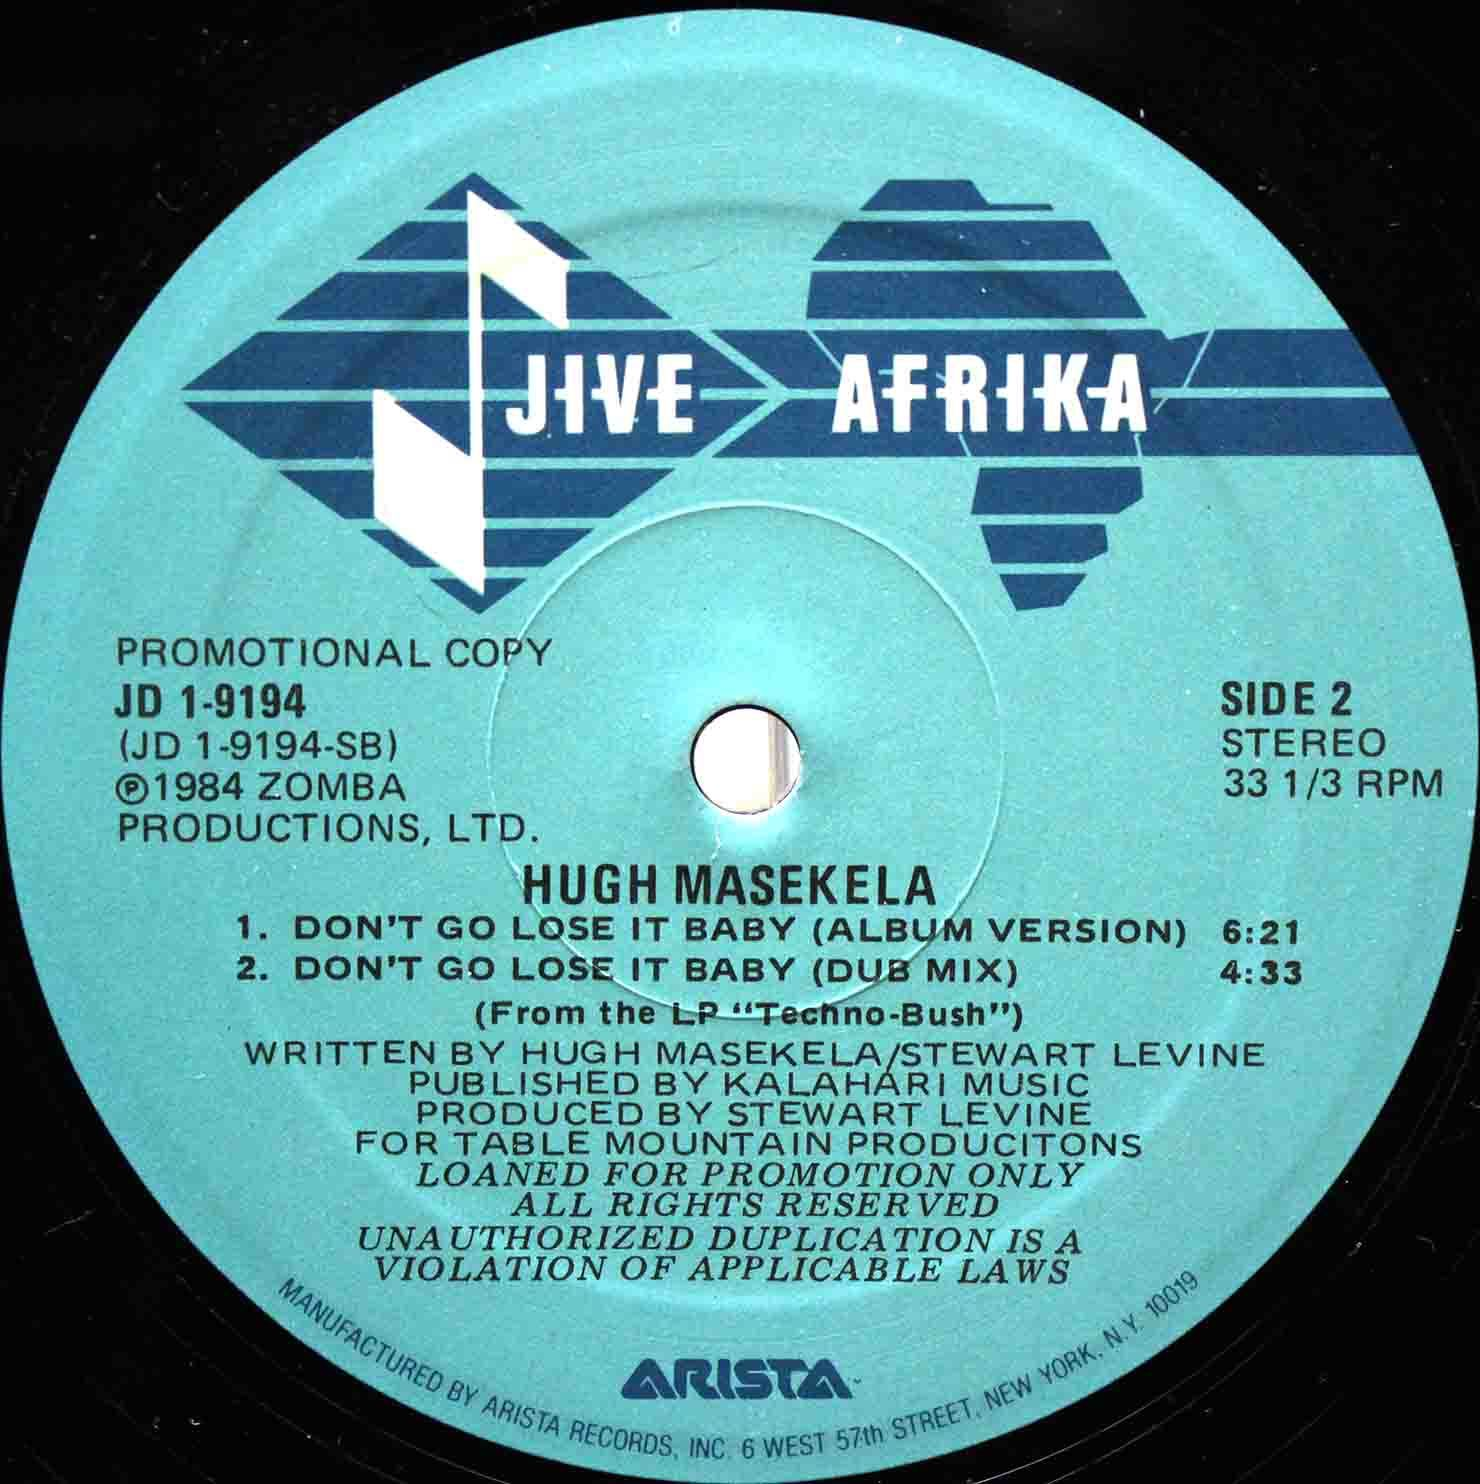 Hugh Masekela - Dont Go Lose It Baby 04